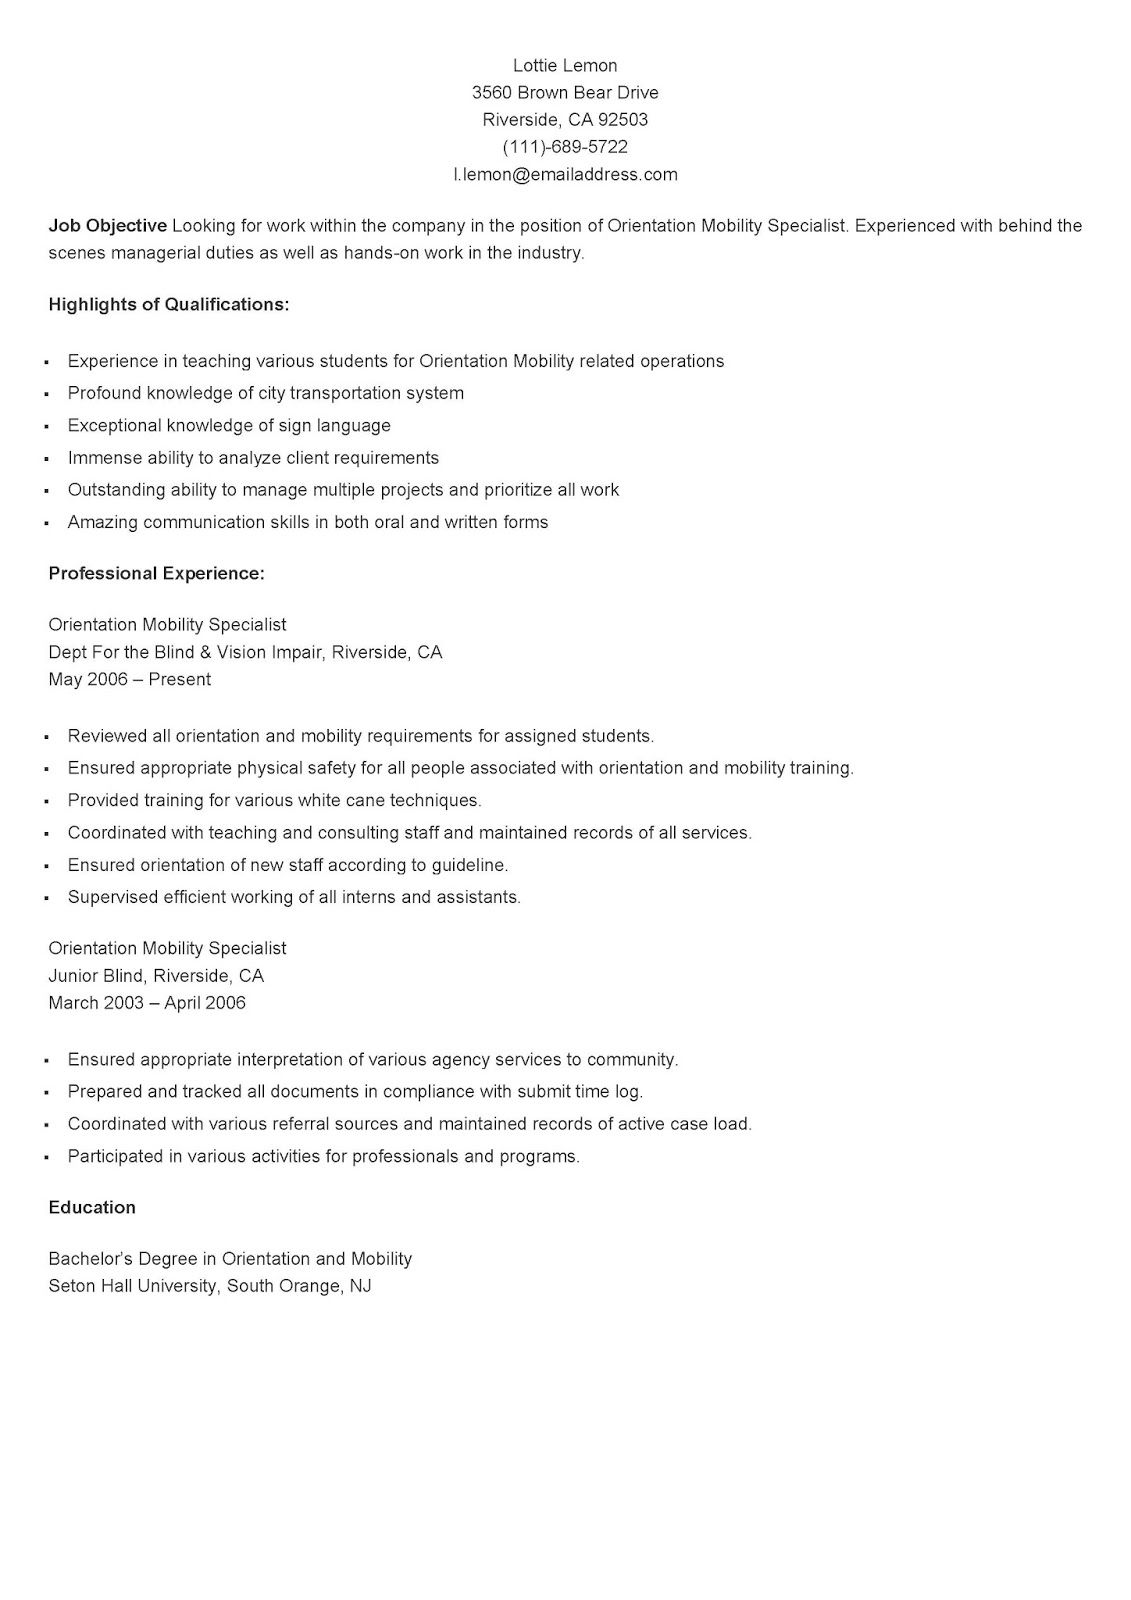 sample orientation mobility specialist resume